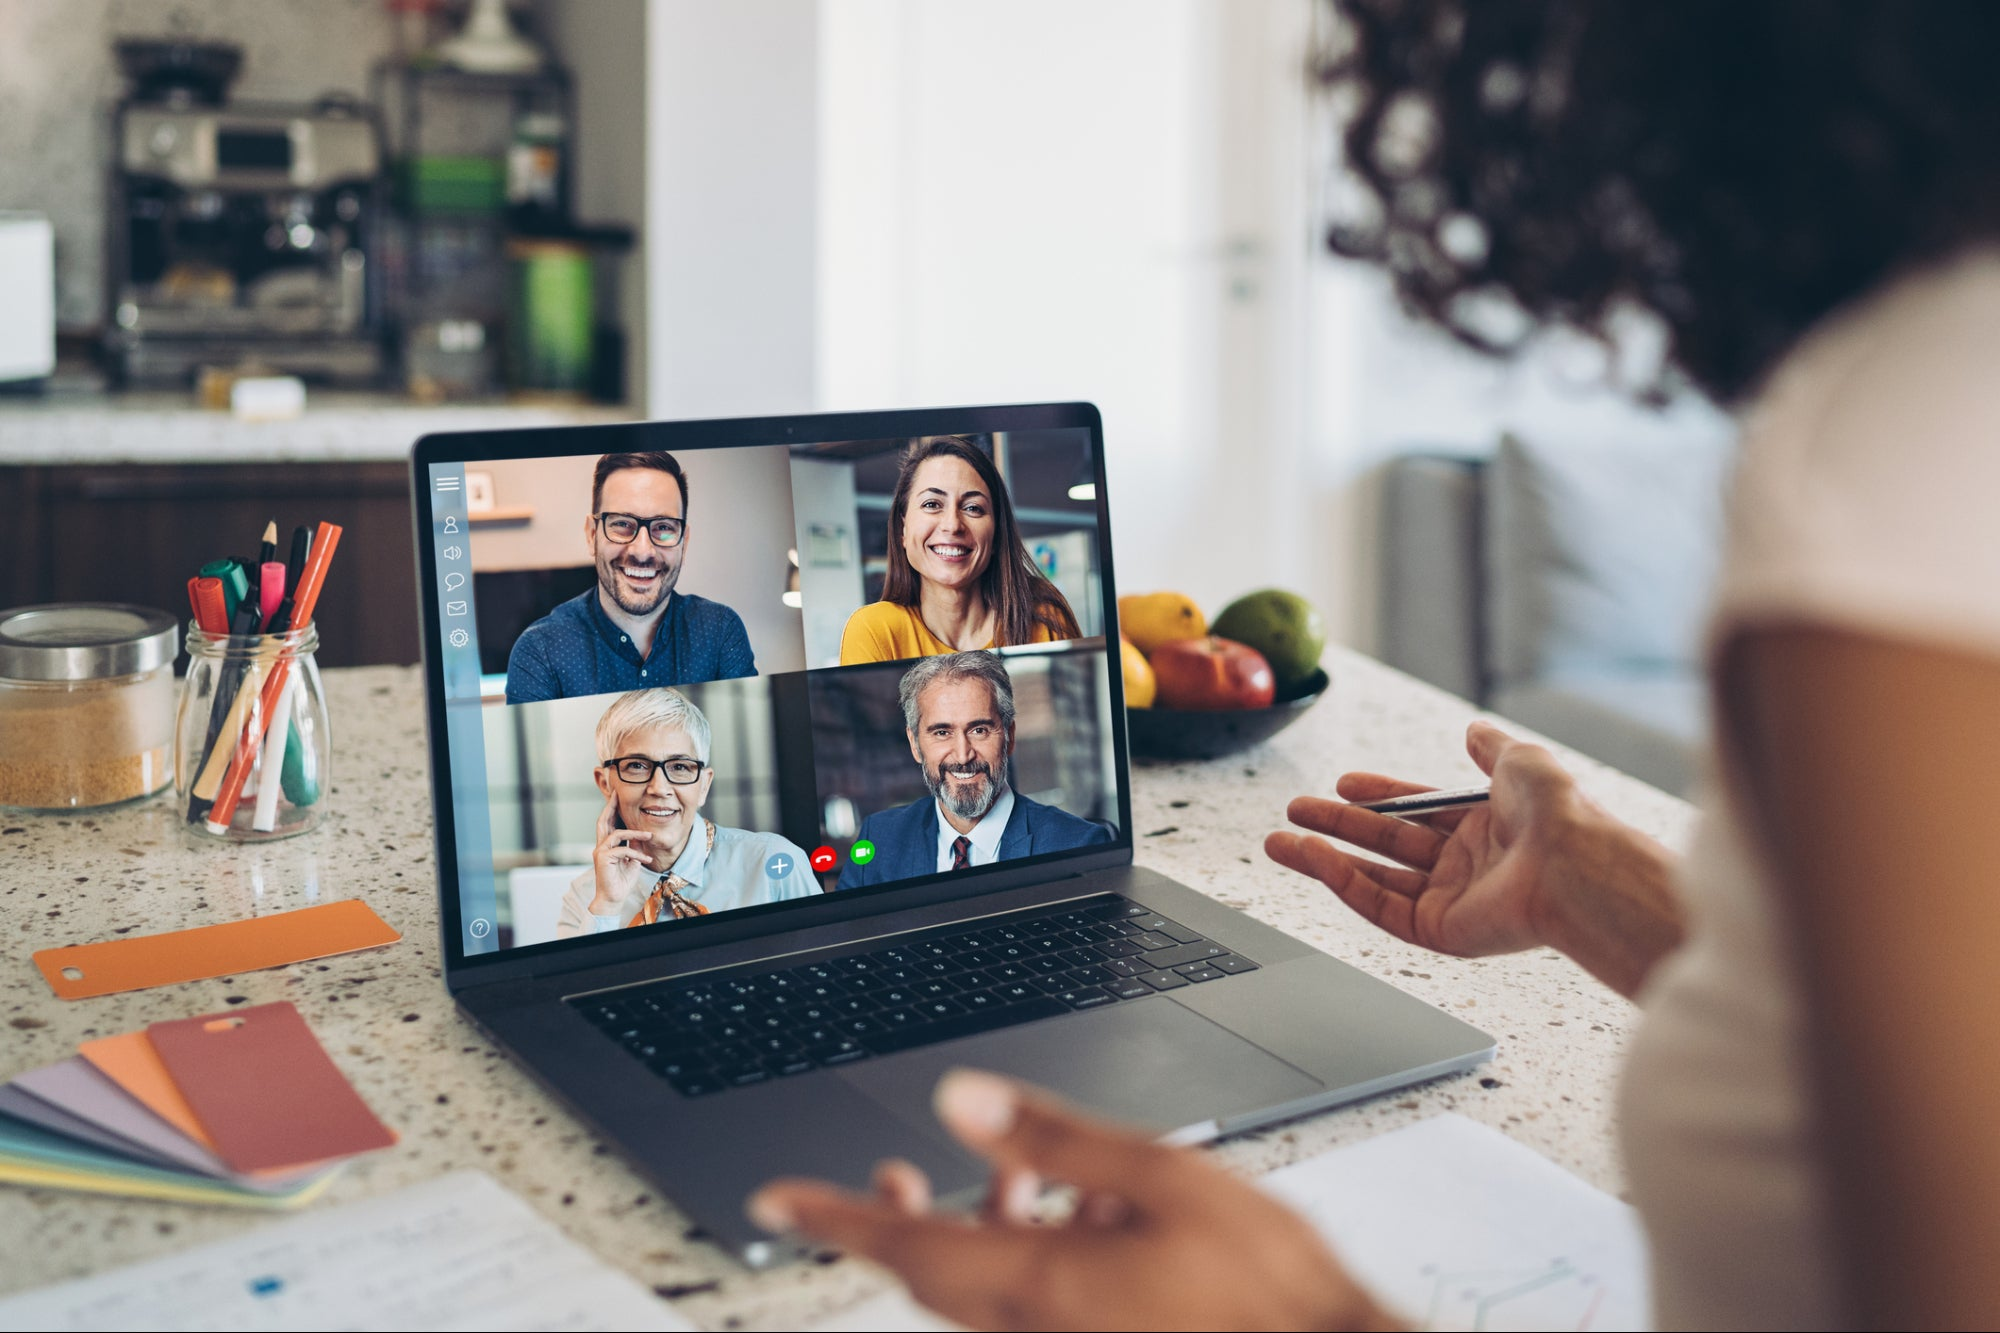 5 Tips for Hiring and Team Building Remotely